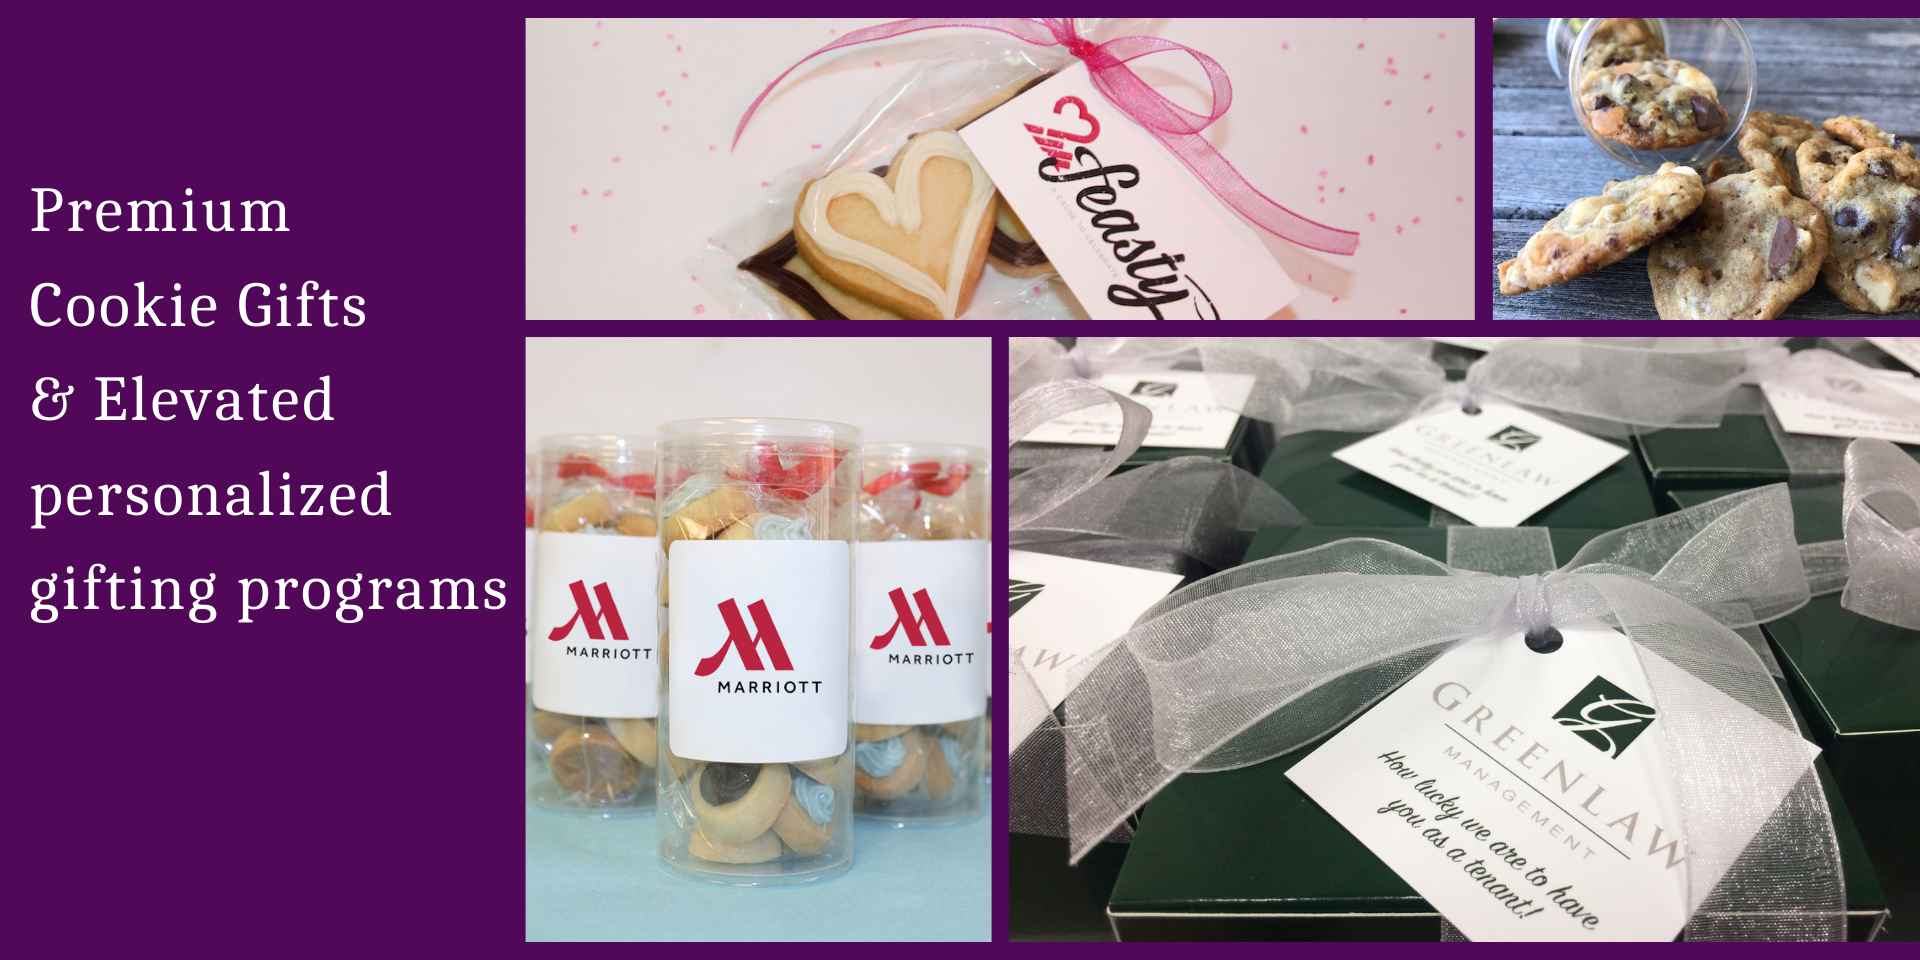 Super Love Cookies personalizes heart shaped cookie gifts and traditional cookie favors for business, special events, and client retention programs and more.